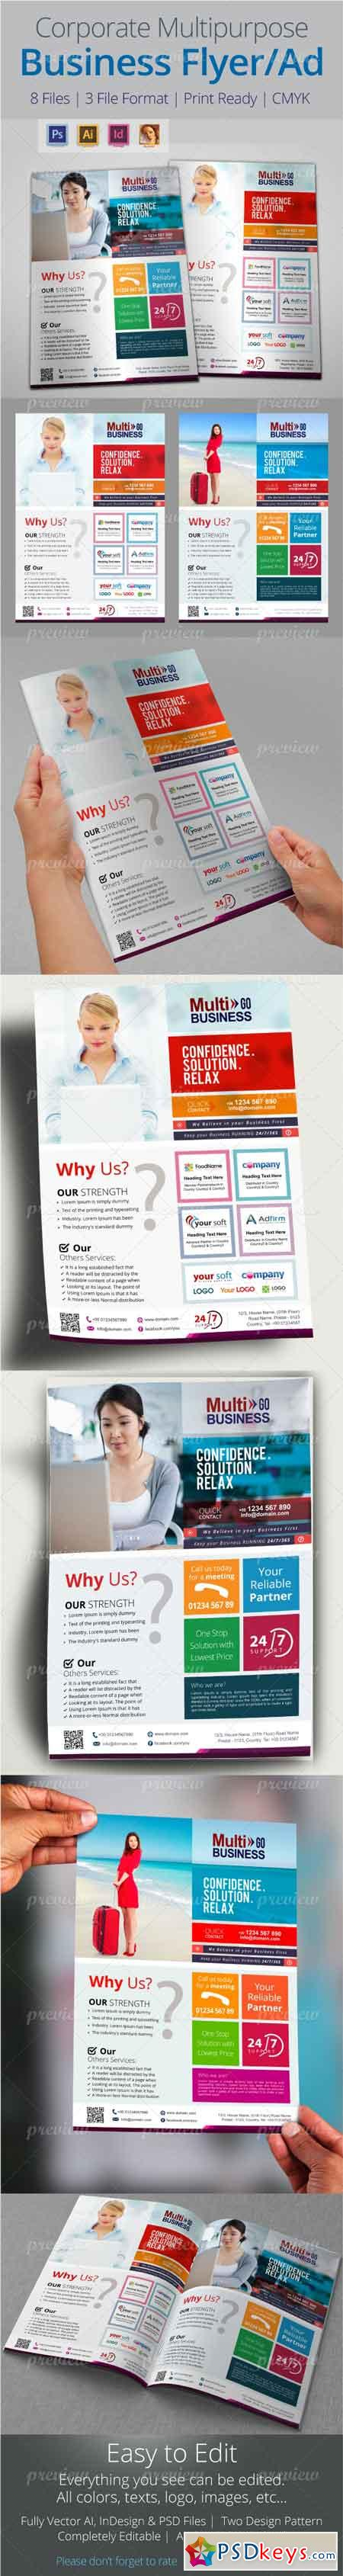 corporate multipurpose business flyer ad templates  corporate multipurpose business flyer ad templates 4794